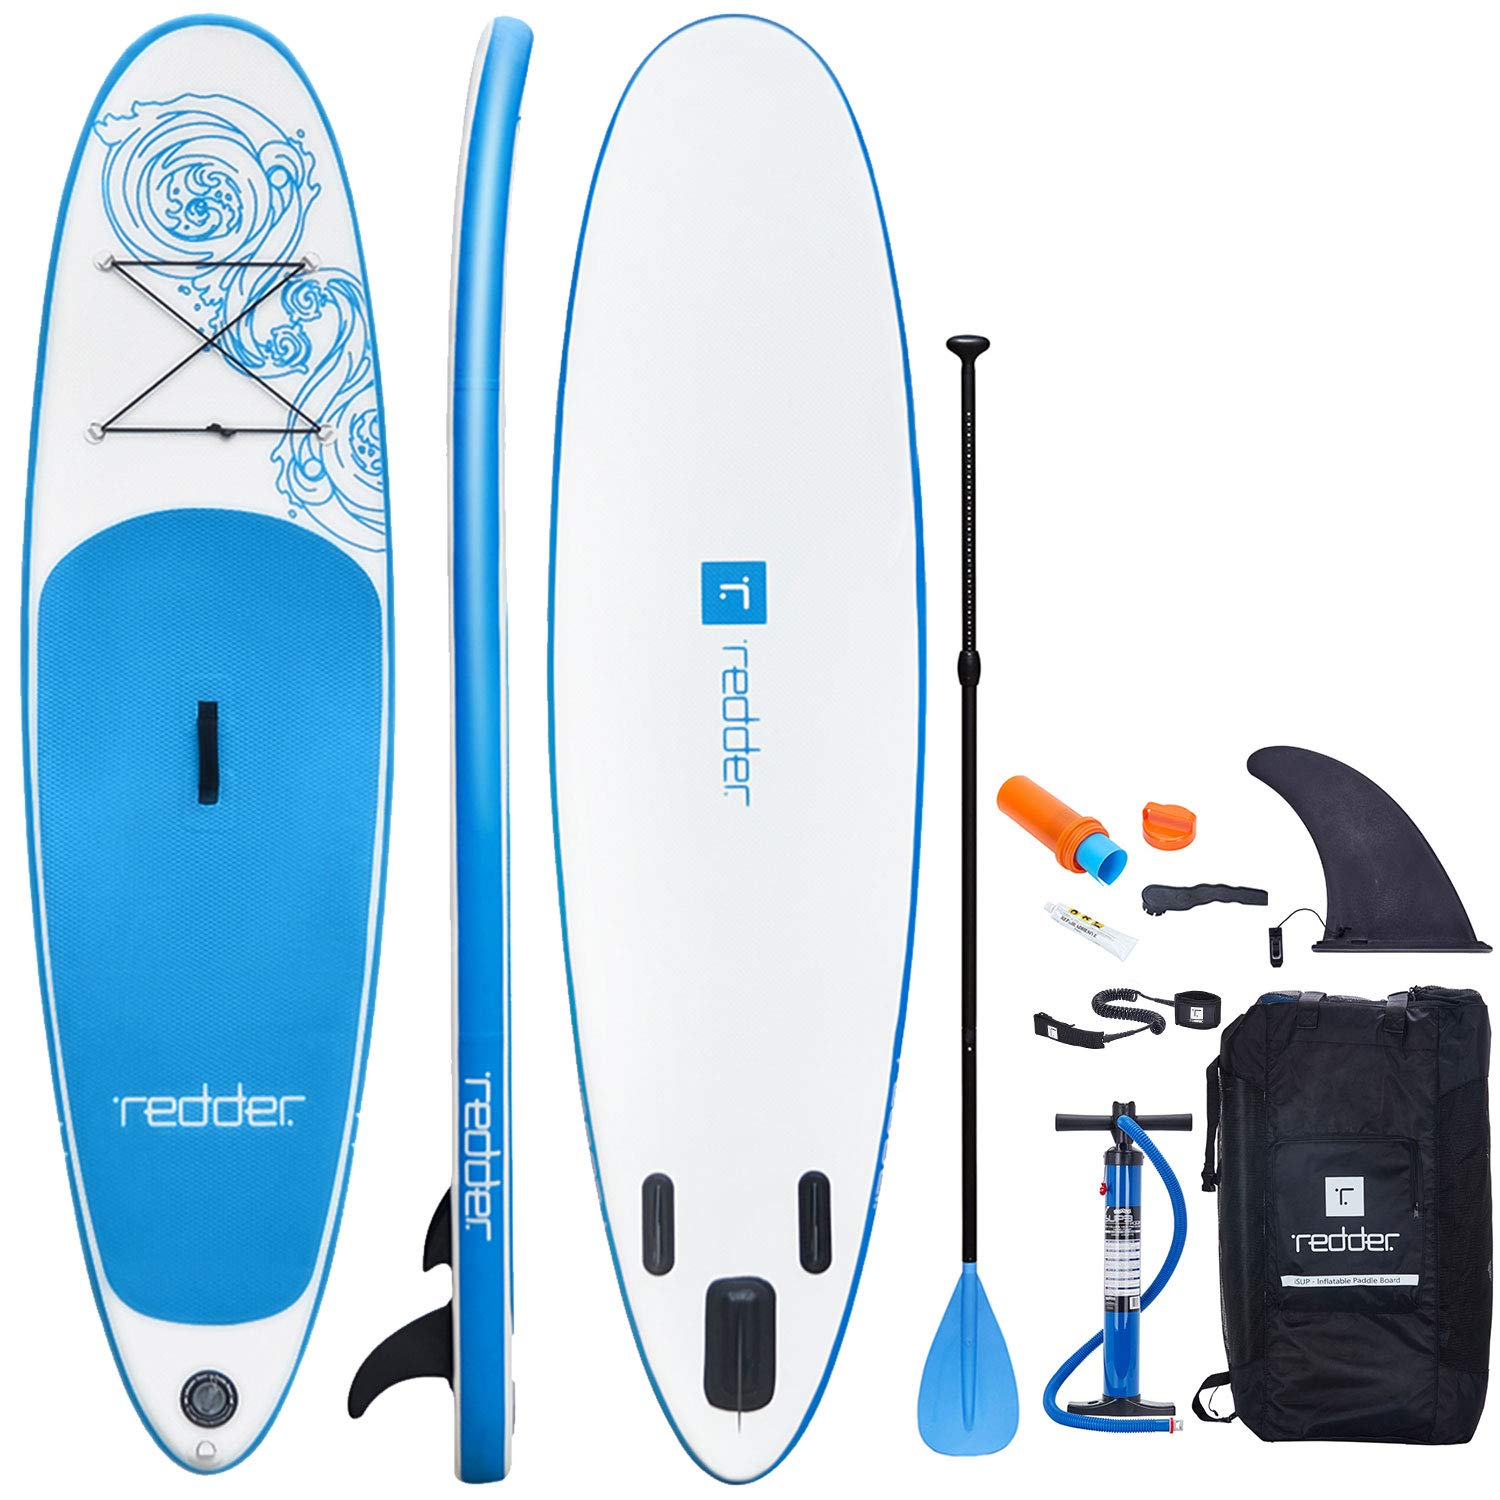 redder Inflatable Stand Up Paddle Board (4.75 Inches Thick) Vortex Universal SUP All Round | Bottom Fin for Paddling and Surf Control | Non-Slip Deck | Youth and Adult 8'8''